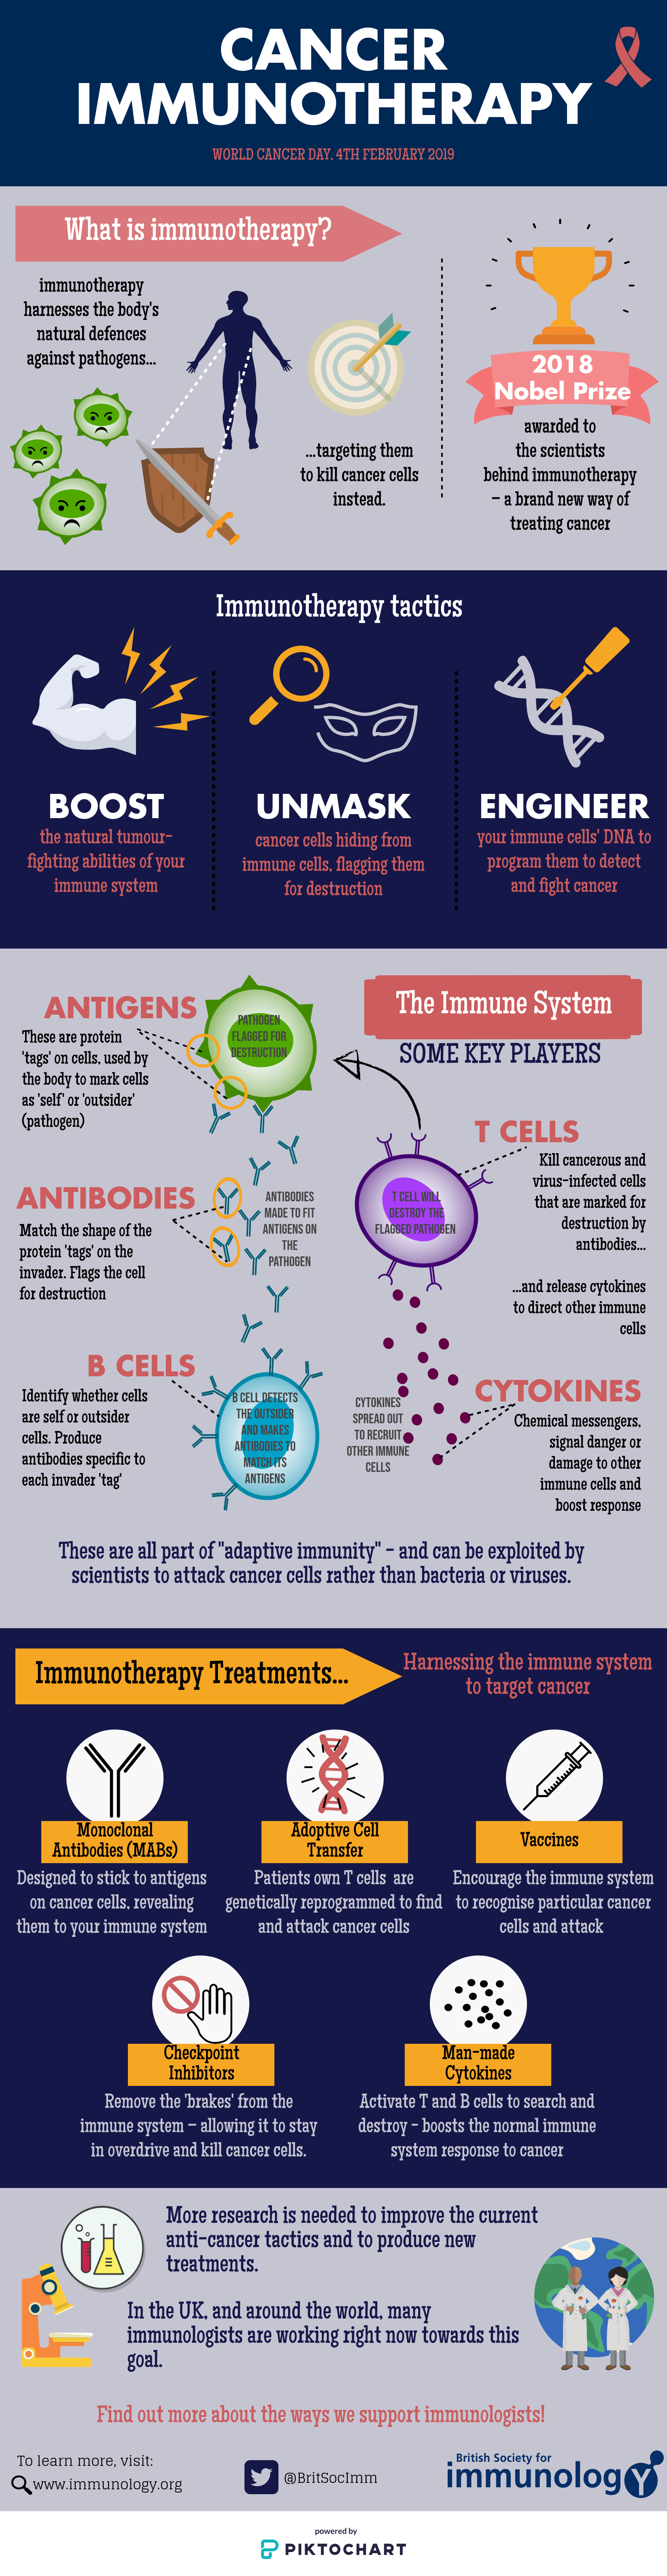 Cancer Immunotherapy Infographic